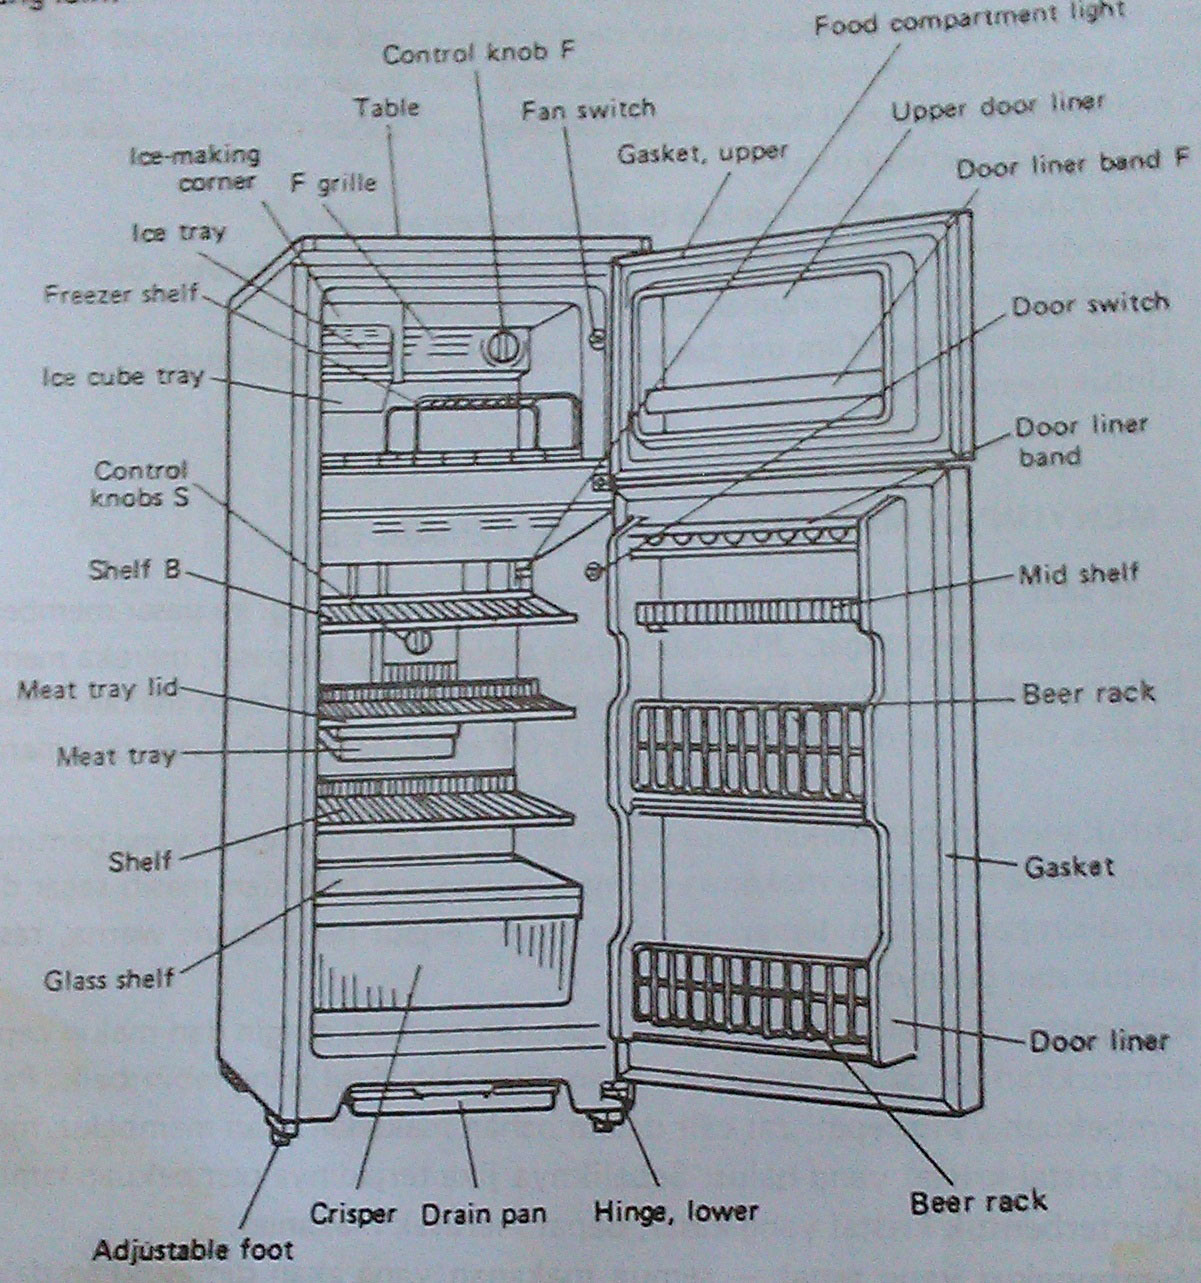 medium resolution of wiring diagram kulkas 2 pintu mitsubishi wiring diagram 2004 mitsubishi endeavor fuse box diagram mitsubishi mini